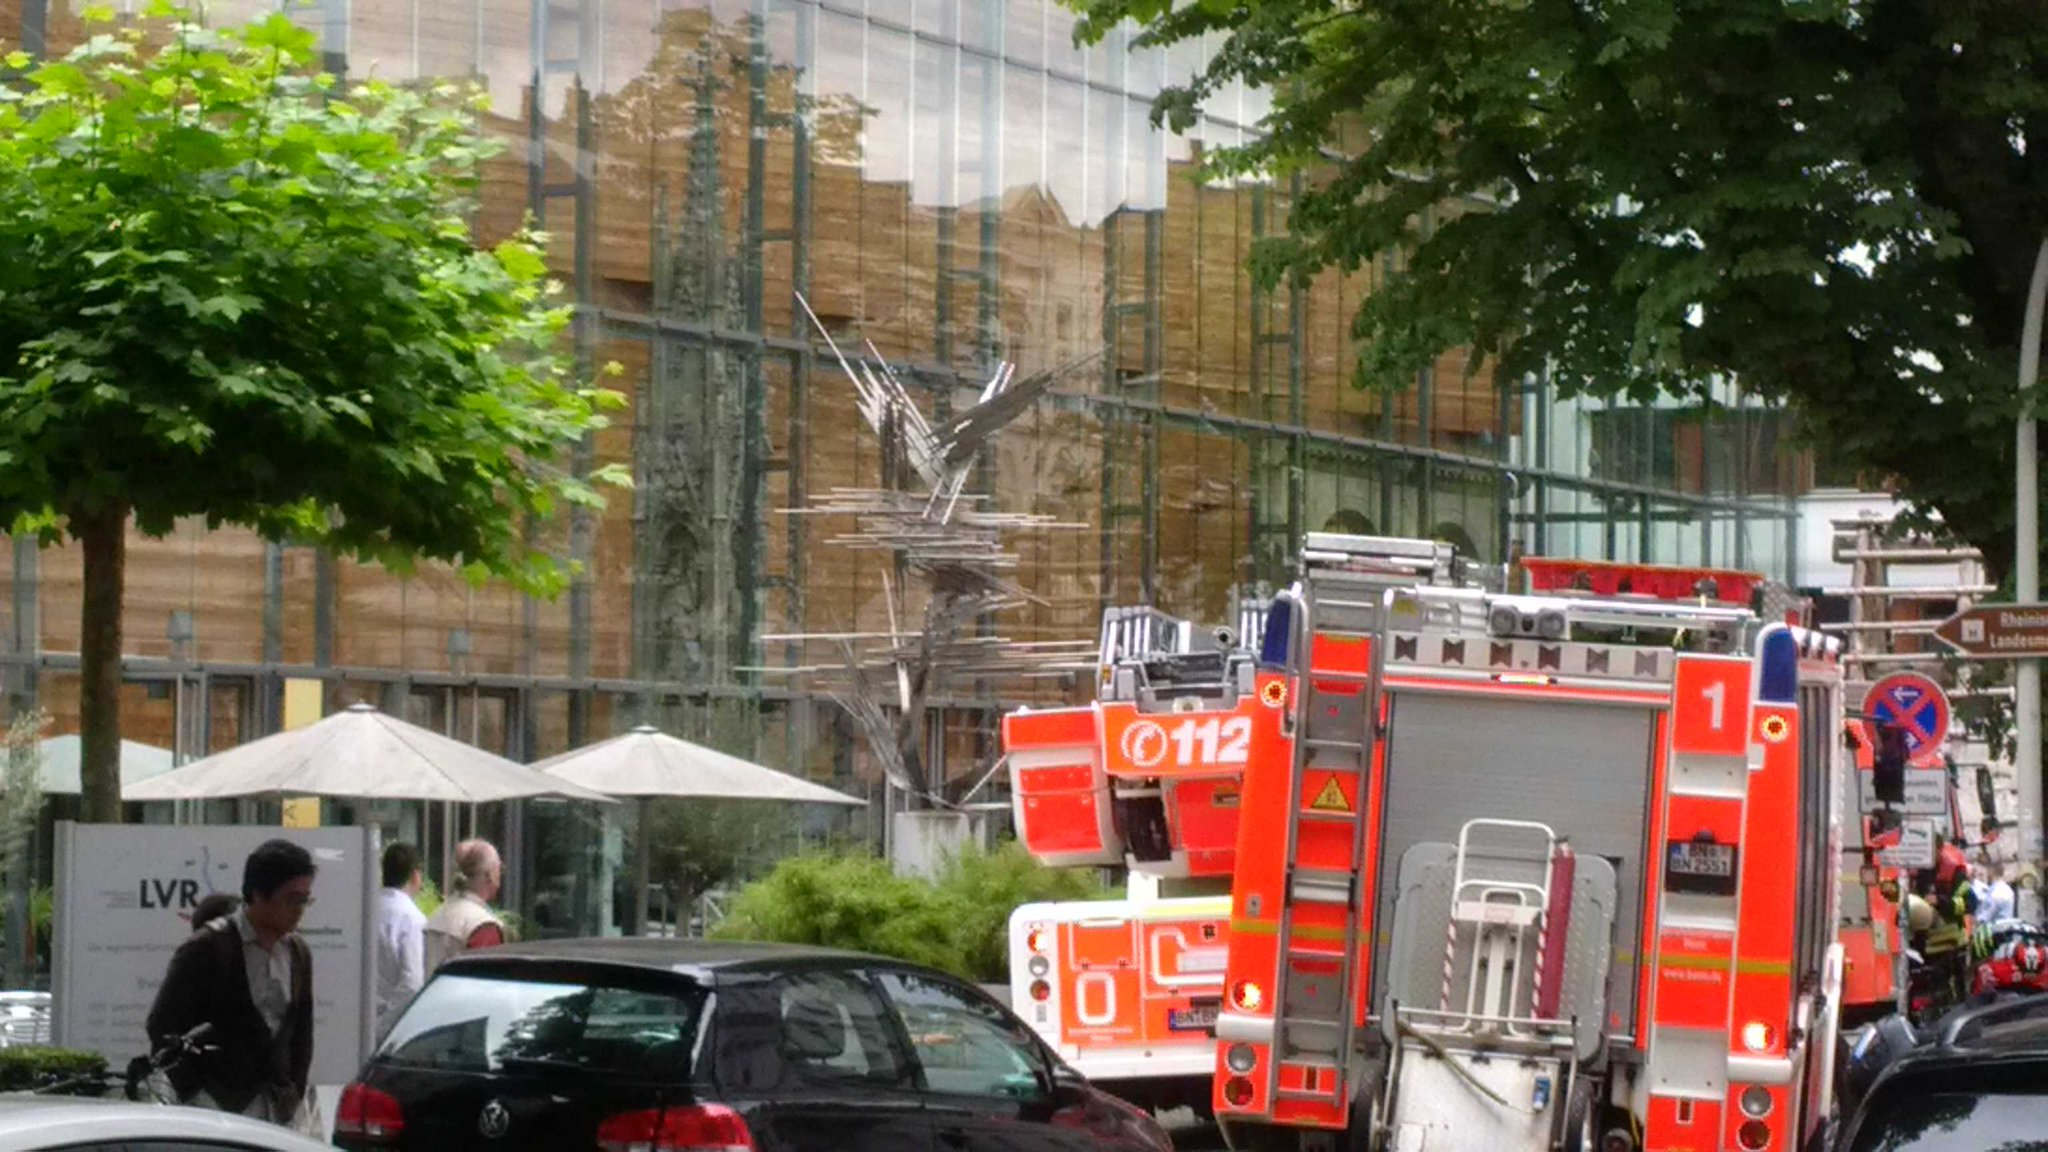 @sparks_eu Fire Alarm in the museum. It wasn't us. But it affects the preparation for tomorrow 's opening https://t.co/2yvMOiURoI